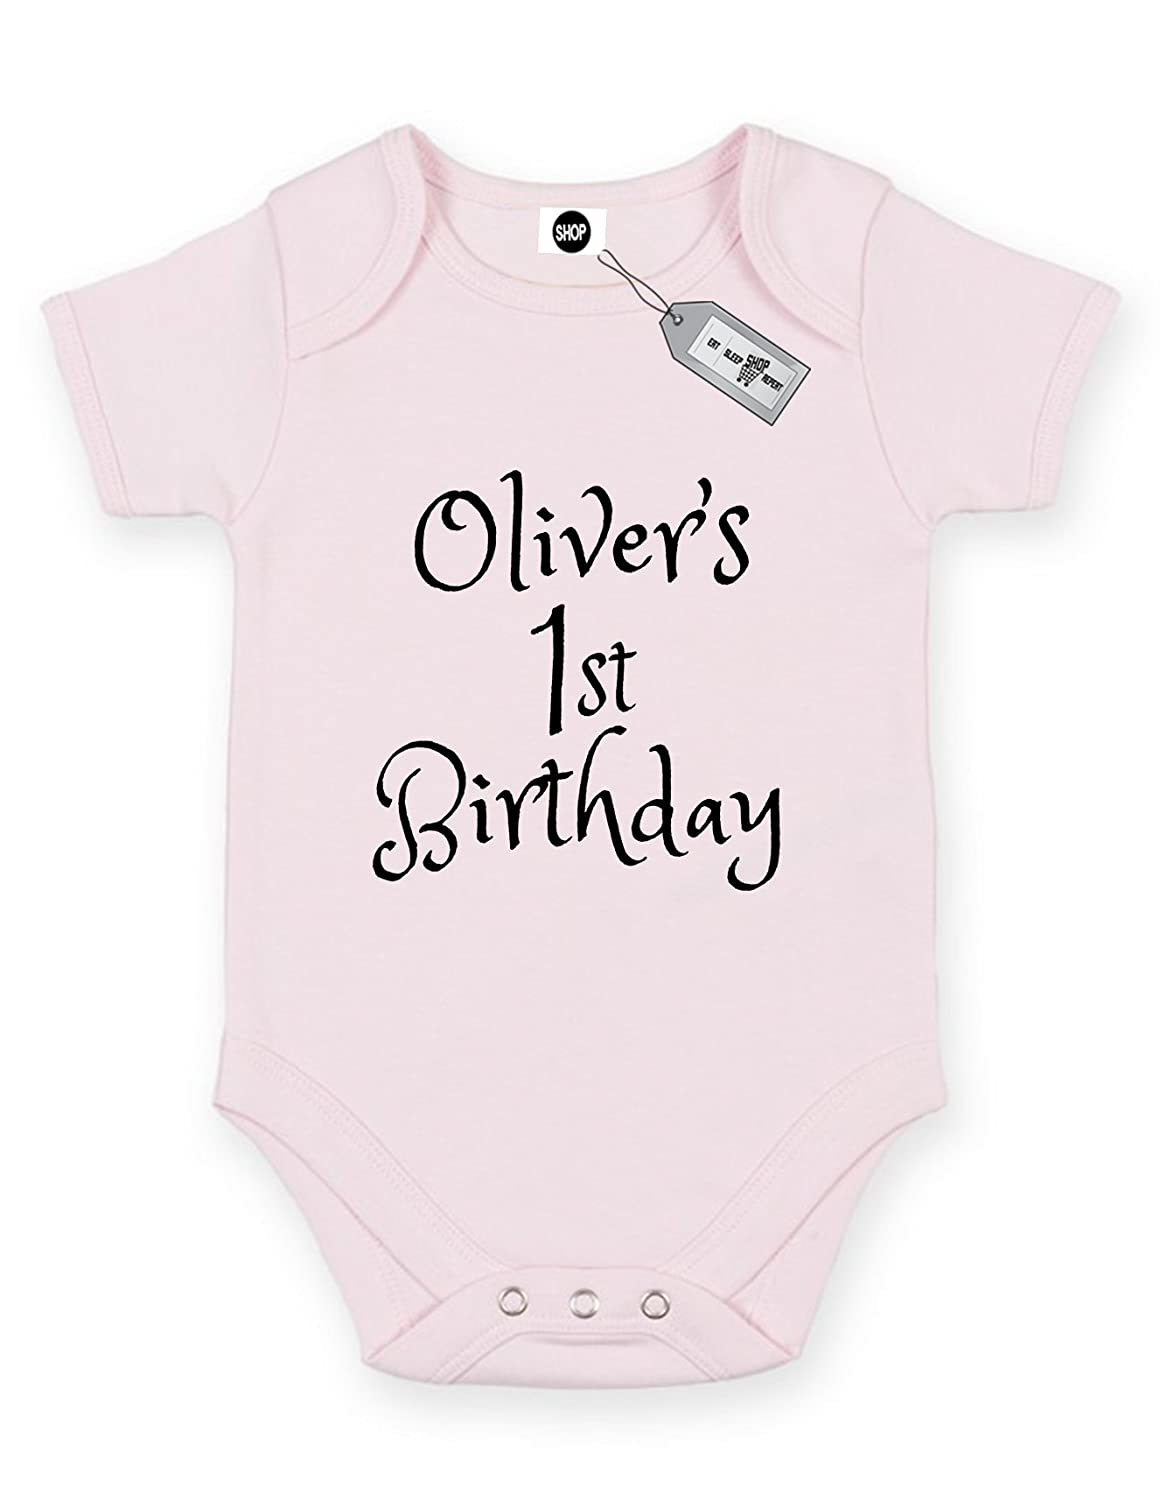 c80c80af76f1b Oliver's 1st Birthday, Name Of Your Choice, Short Sleeve Baby Bodysuit  Babygrow. Free delivery included.